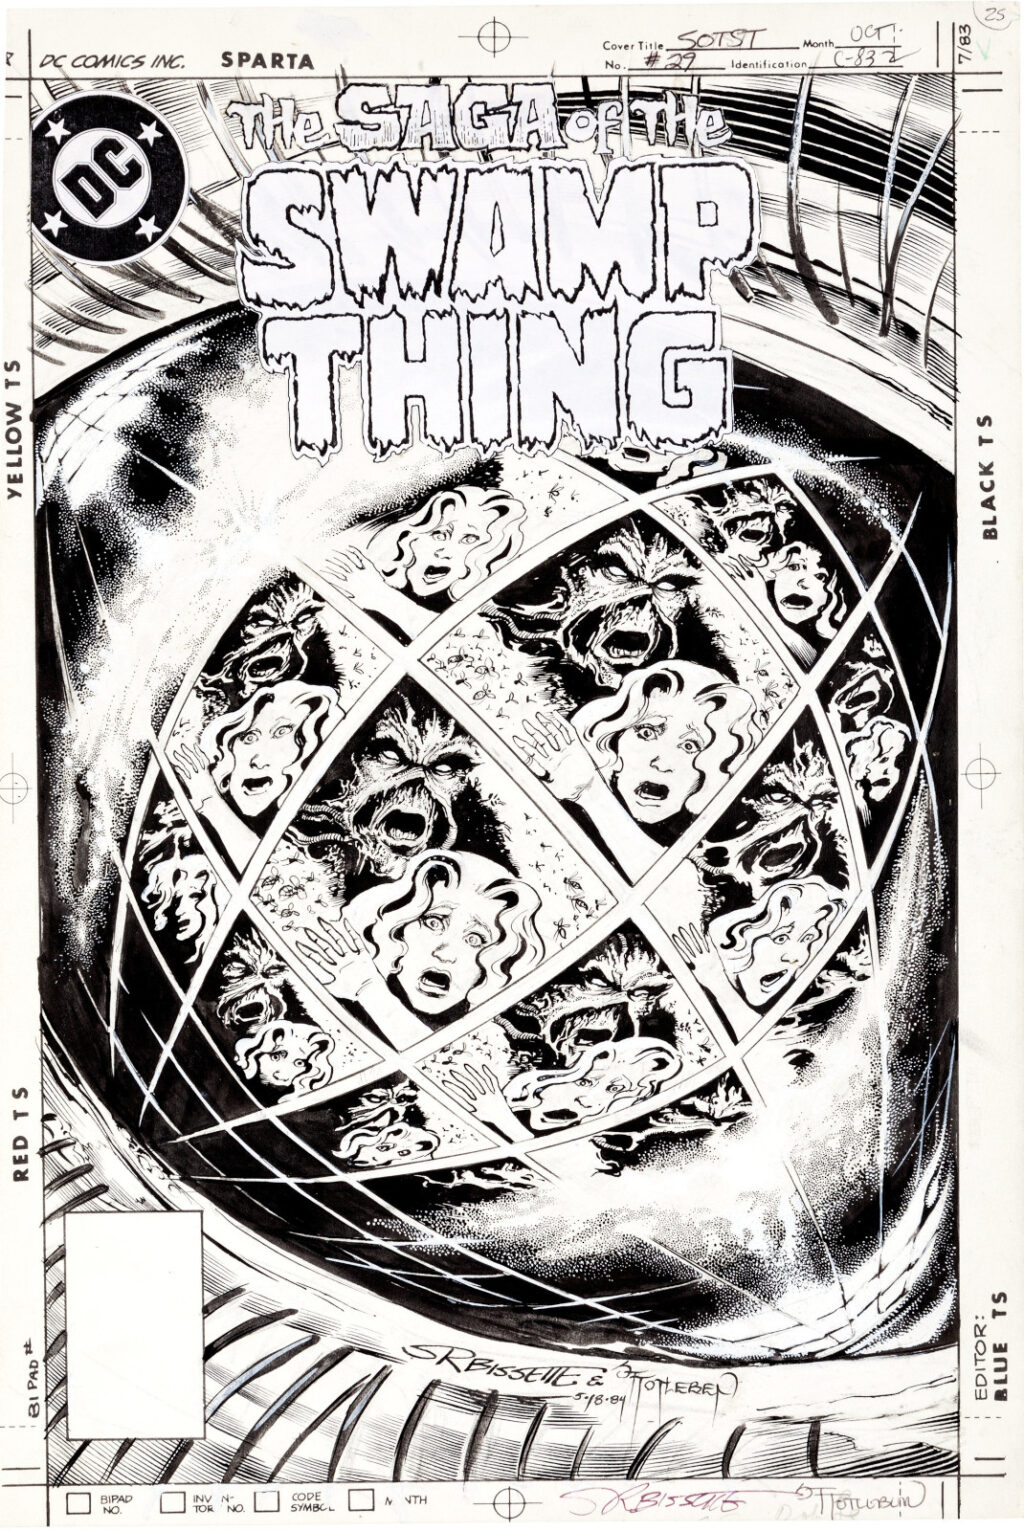 The Saga Of The Swamp Thing issue 29 cover by Steve Bissette and John Totleben